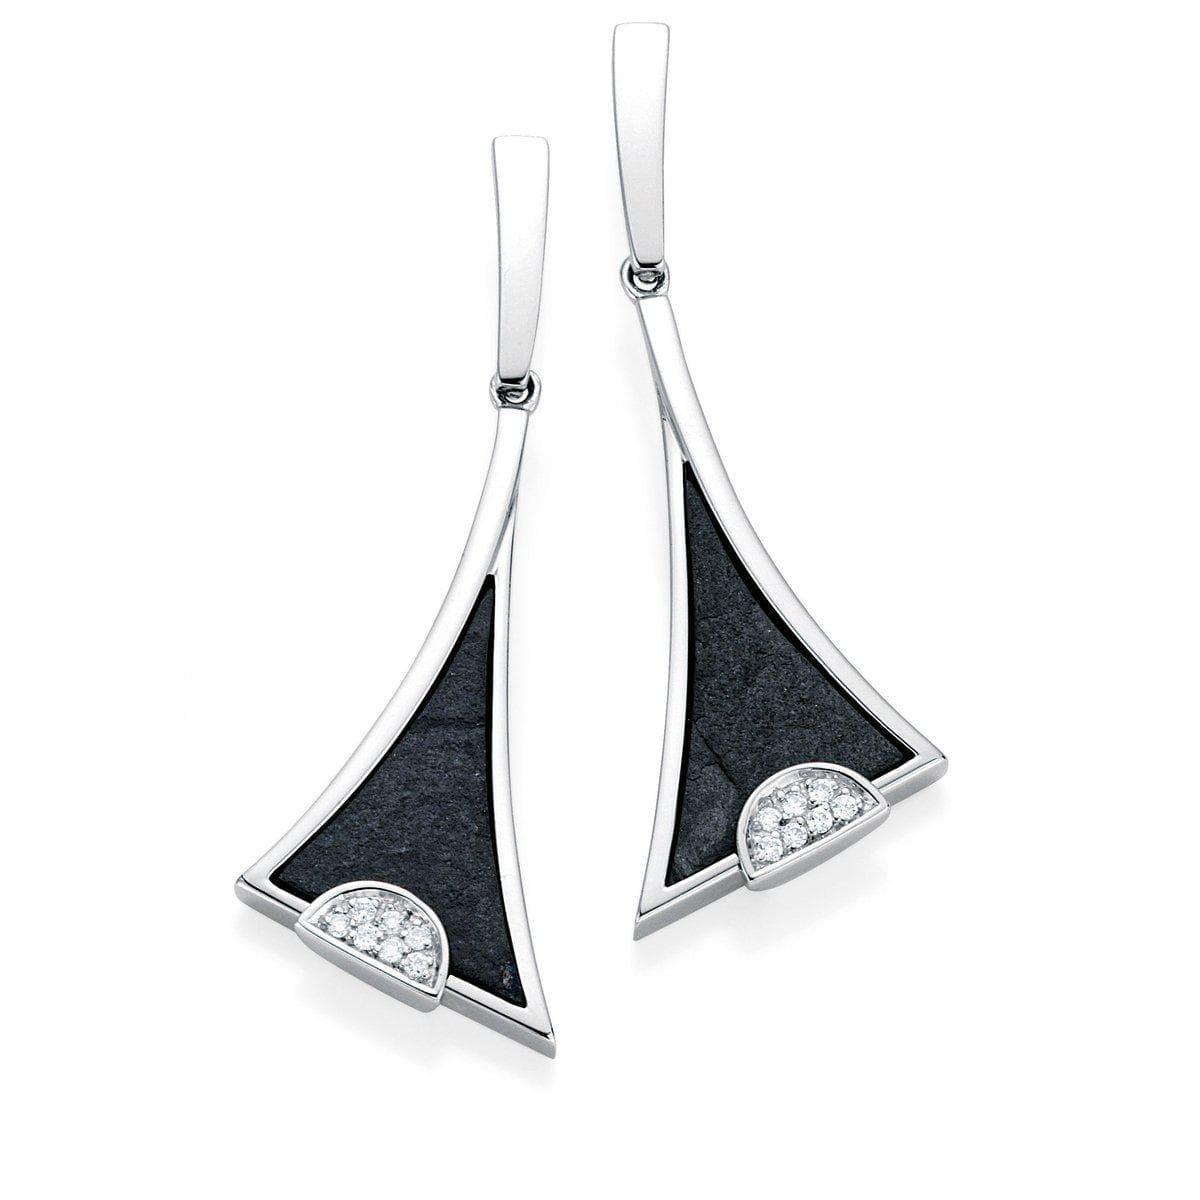 Rhodium Plated Sterling Silver Slate Diamond Earrings - 11/83671-Breuning-Renee Taylor Gallery